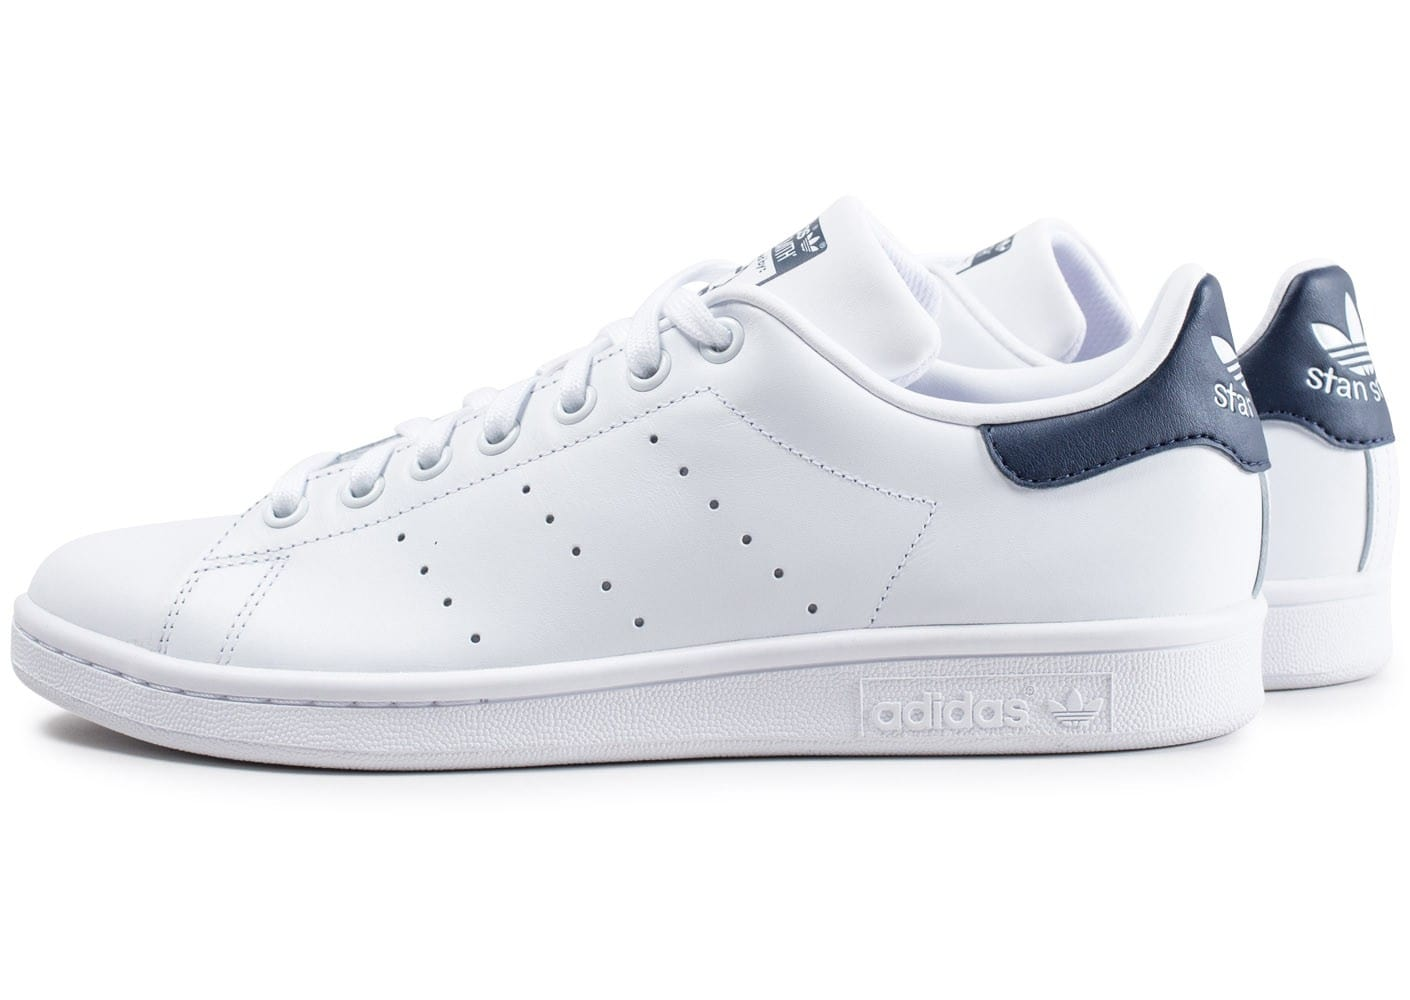 adidas stan smith blanche et bleue chaussures homme chausport. Black Bedroom Furniture Sets. Home Design Ideas